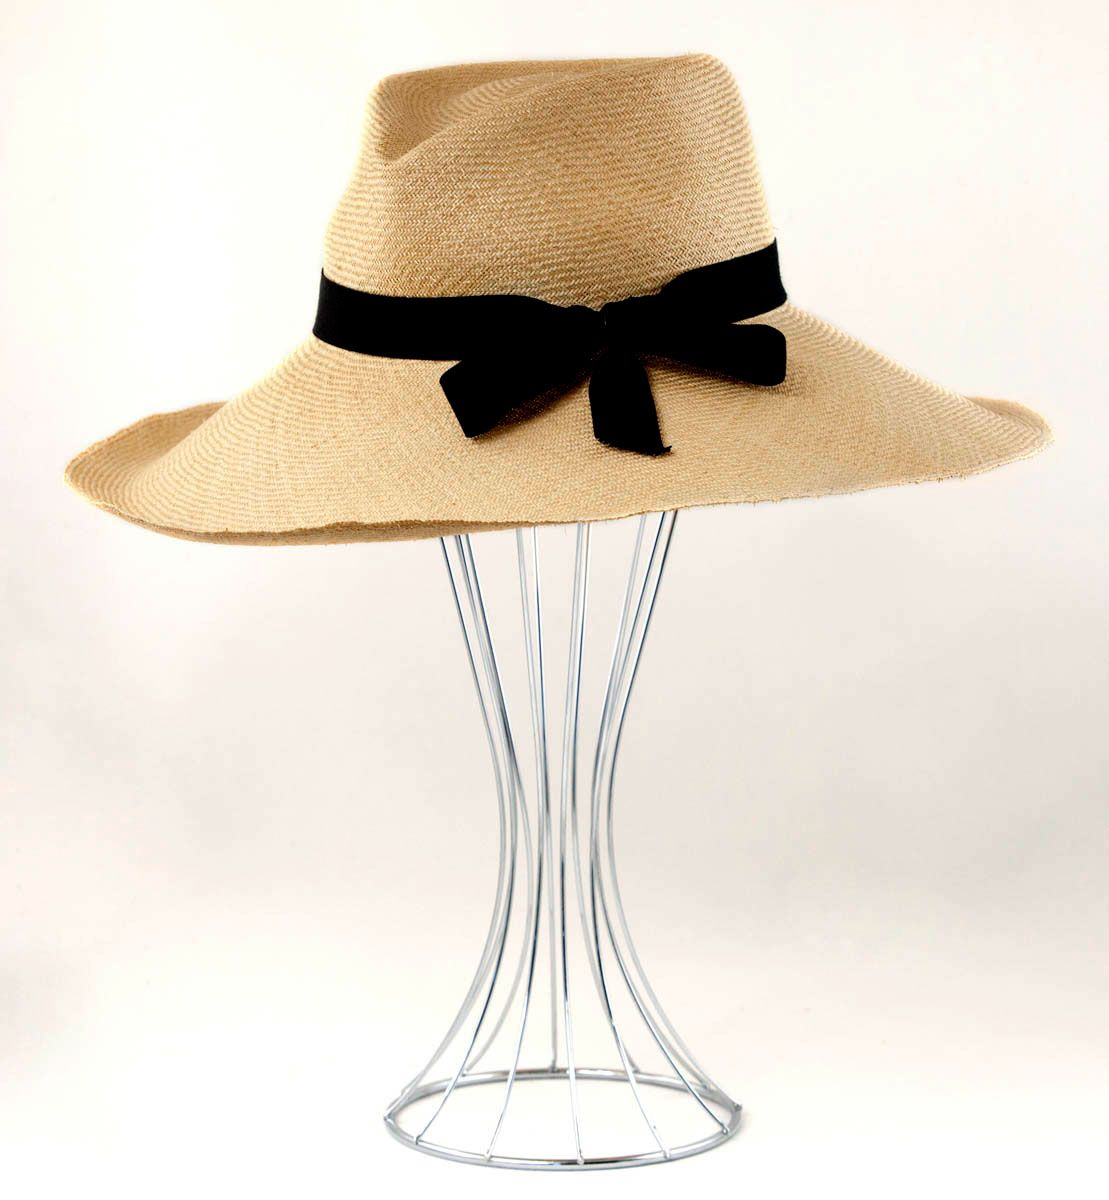 Axel Mano Sydney Hand Made Hat And Bag Designers Hats Vintage Handmade Hat Hats